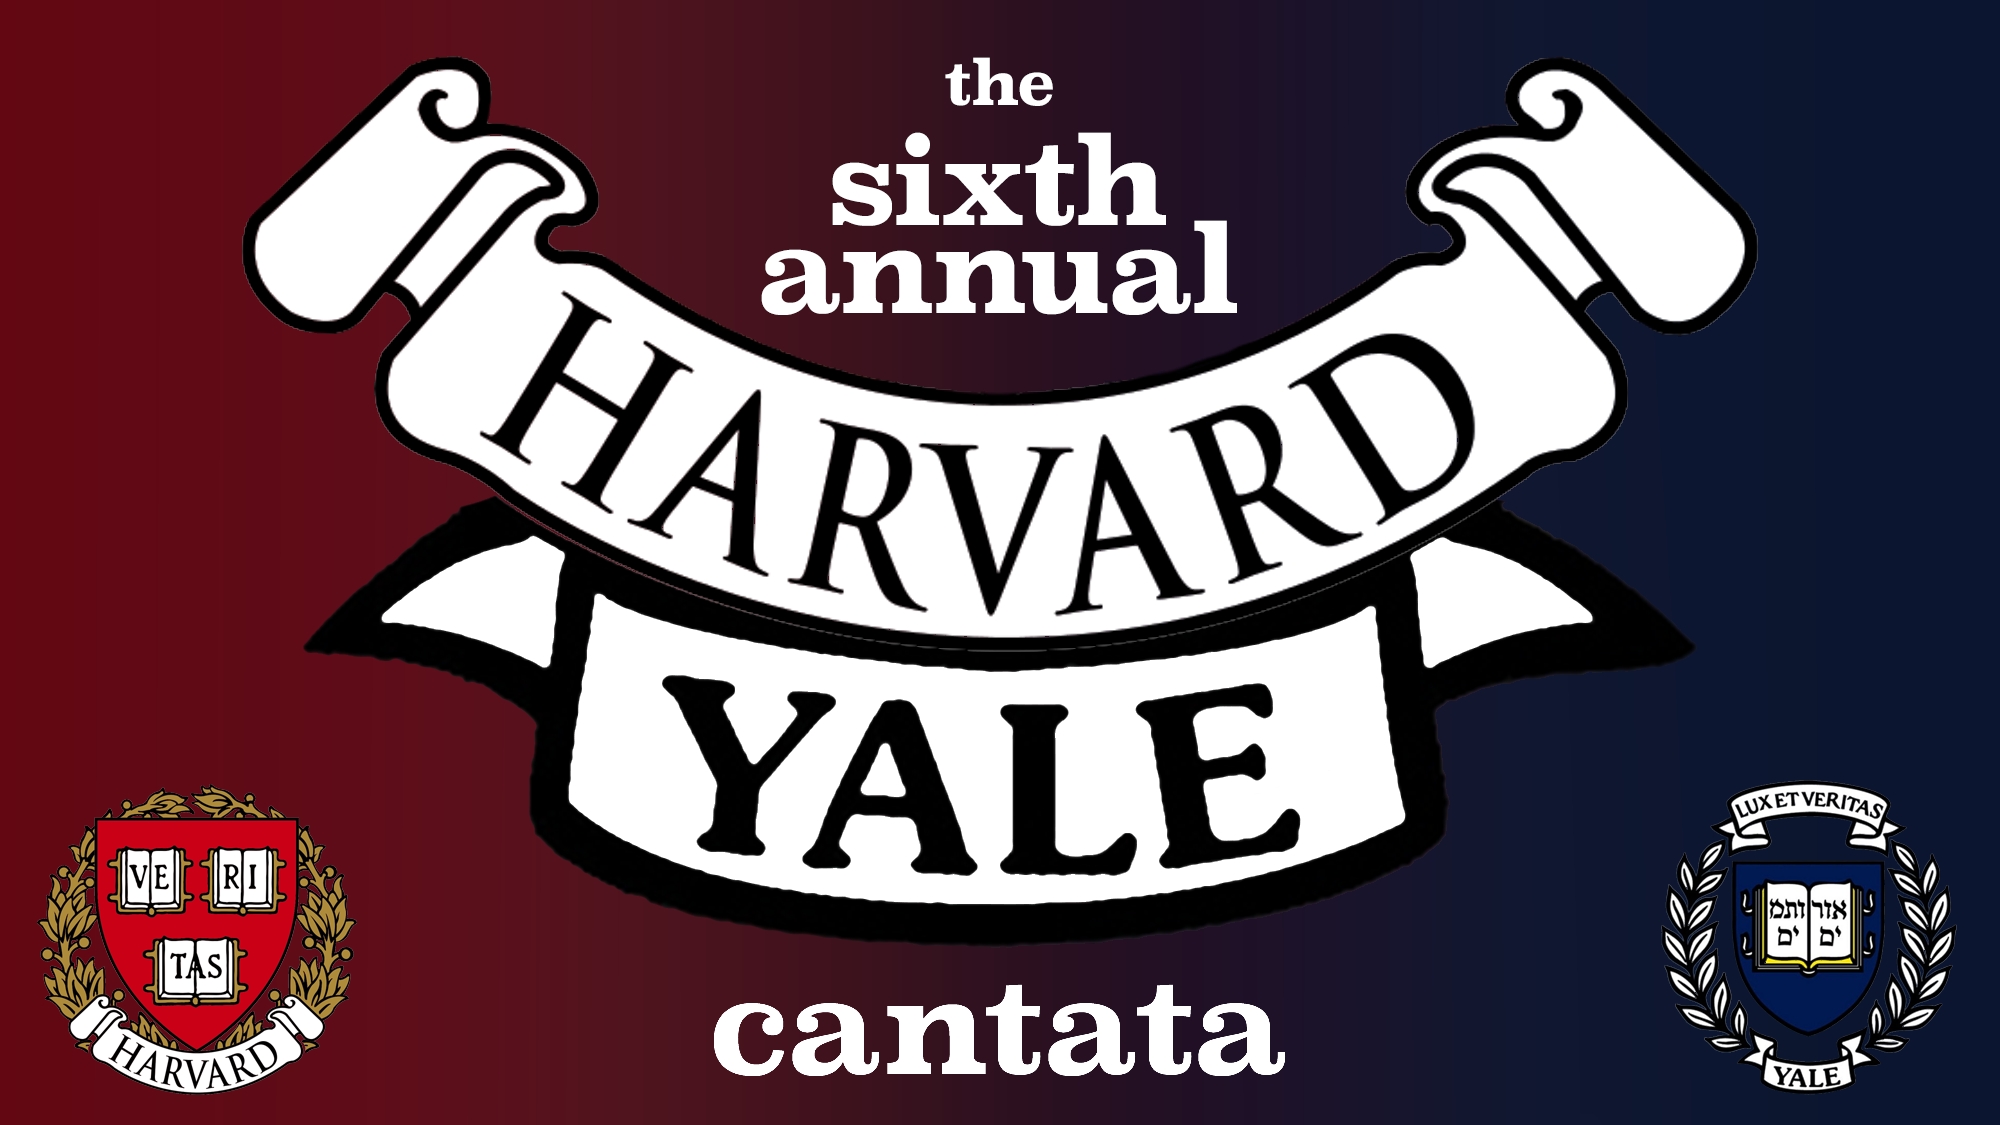 The Harvard-Yale Cantata